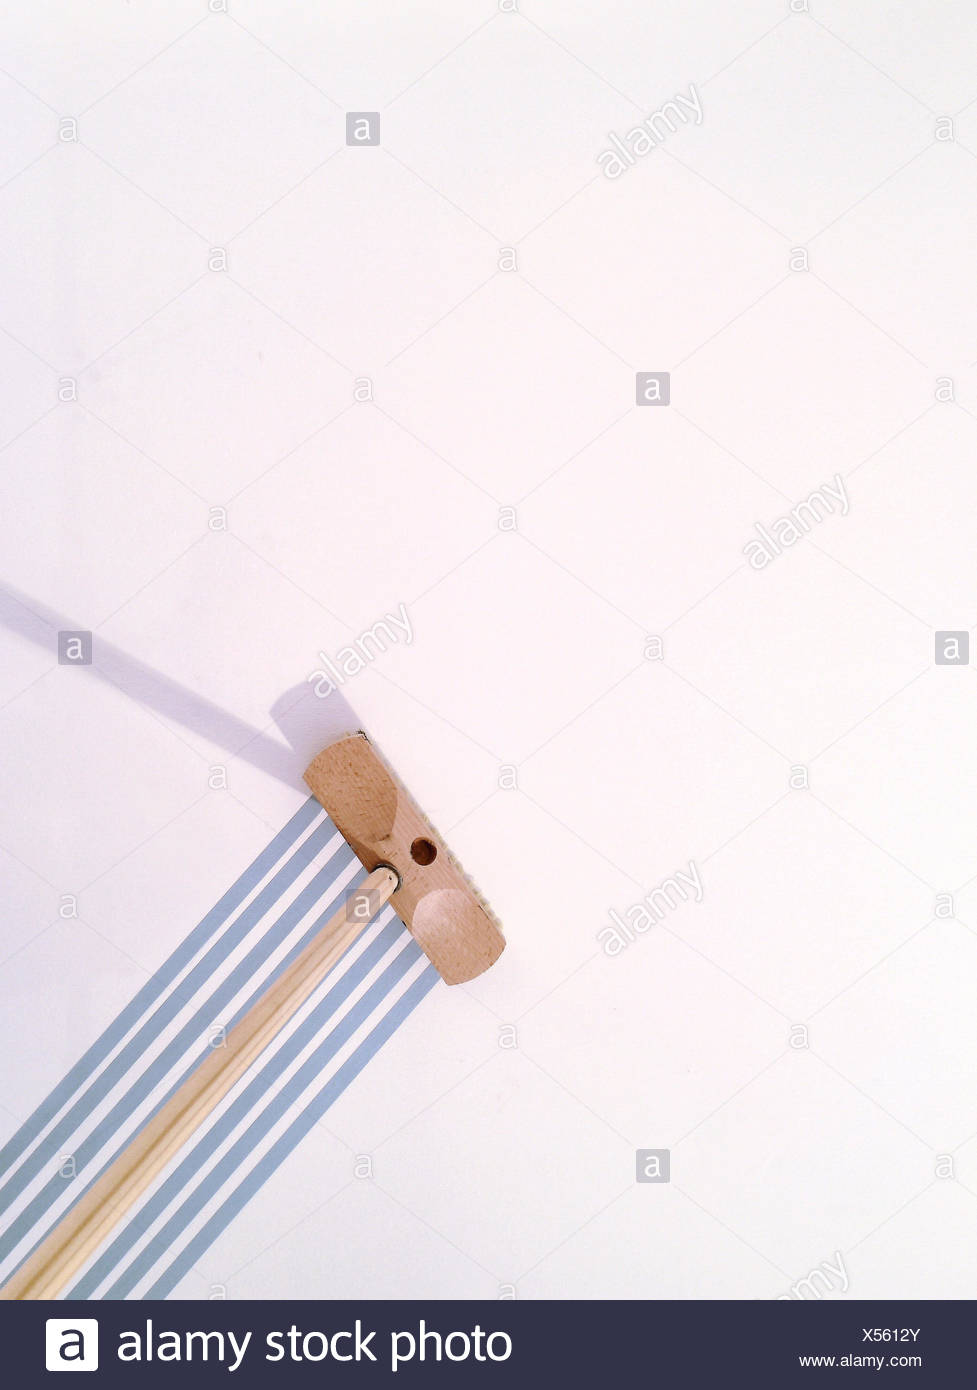 Low Angle View Of Broom By Lines On Wall At Home - Stock Image